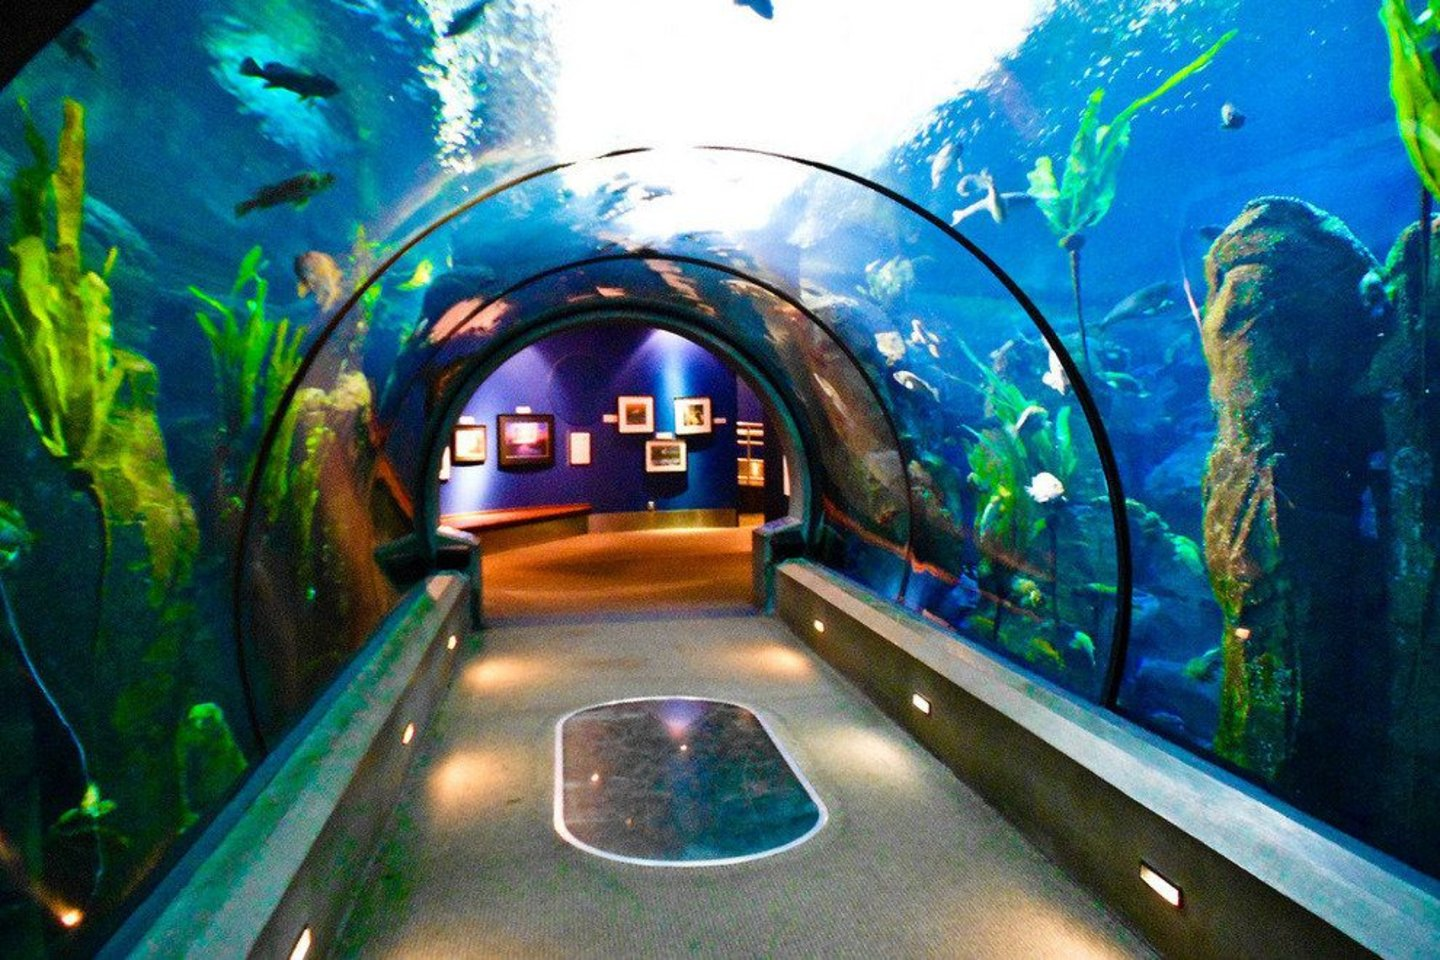 Visit the Oregon Coast Aquarium and learn about our local sea creatures!